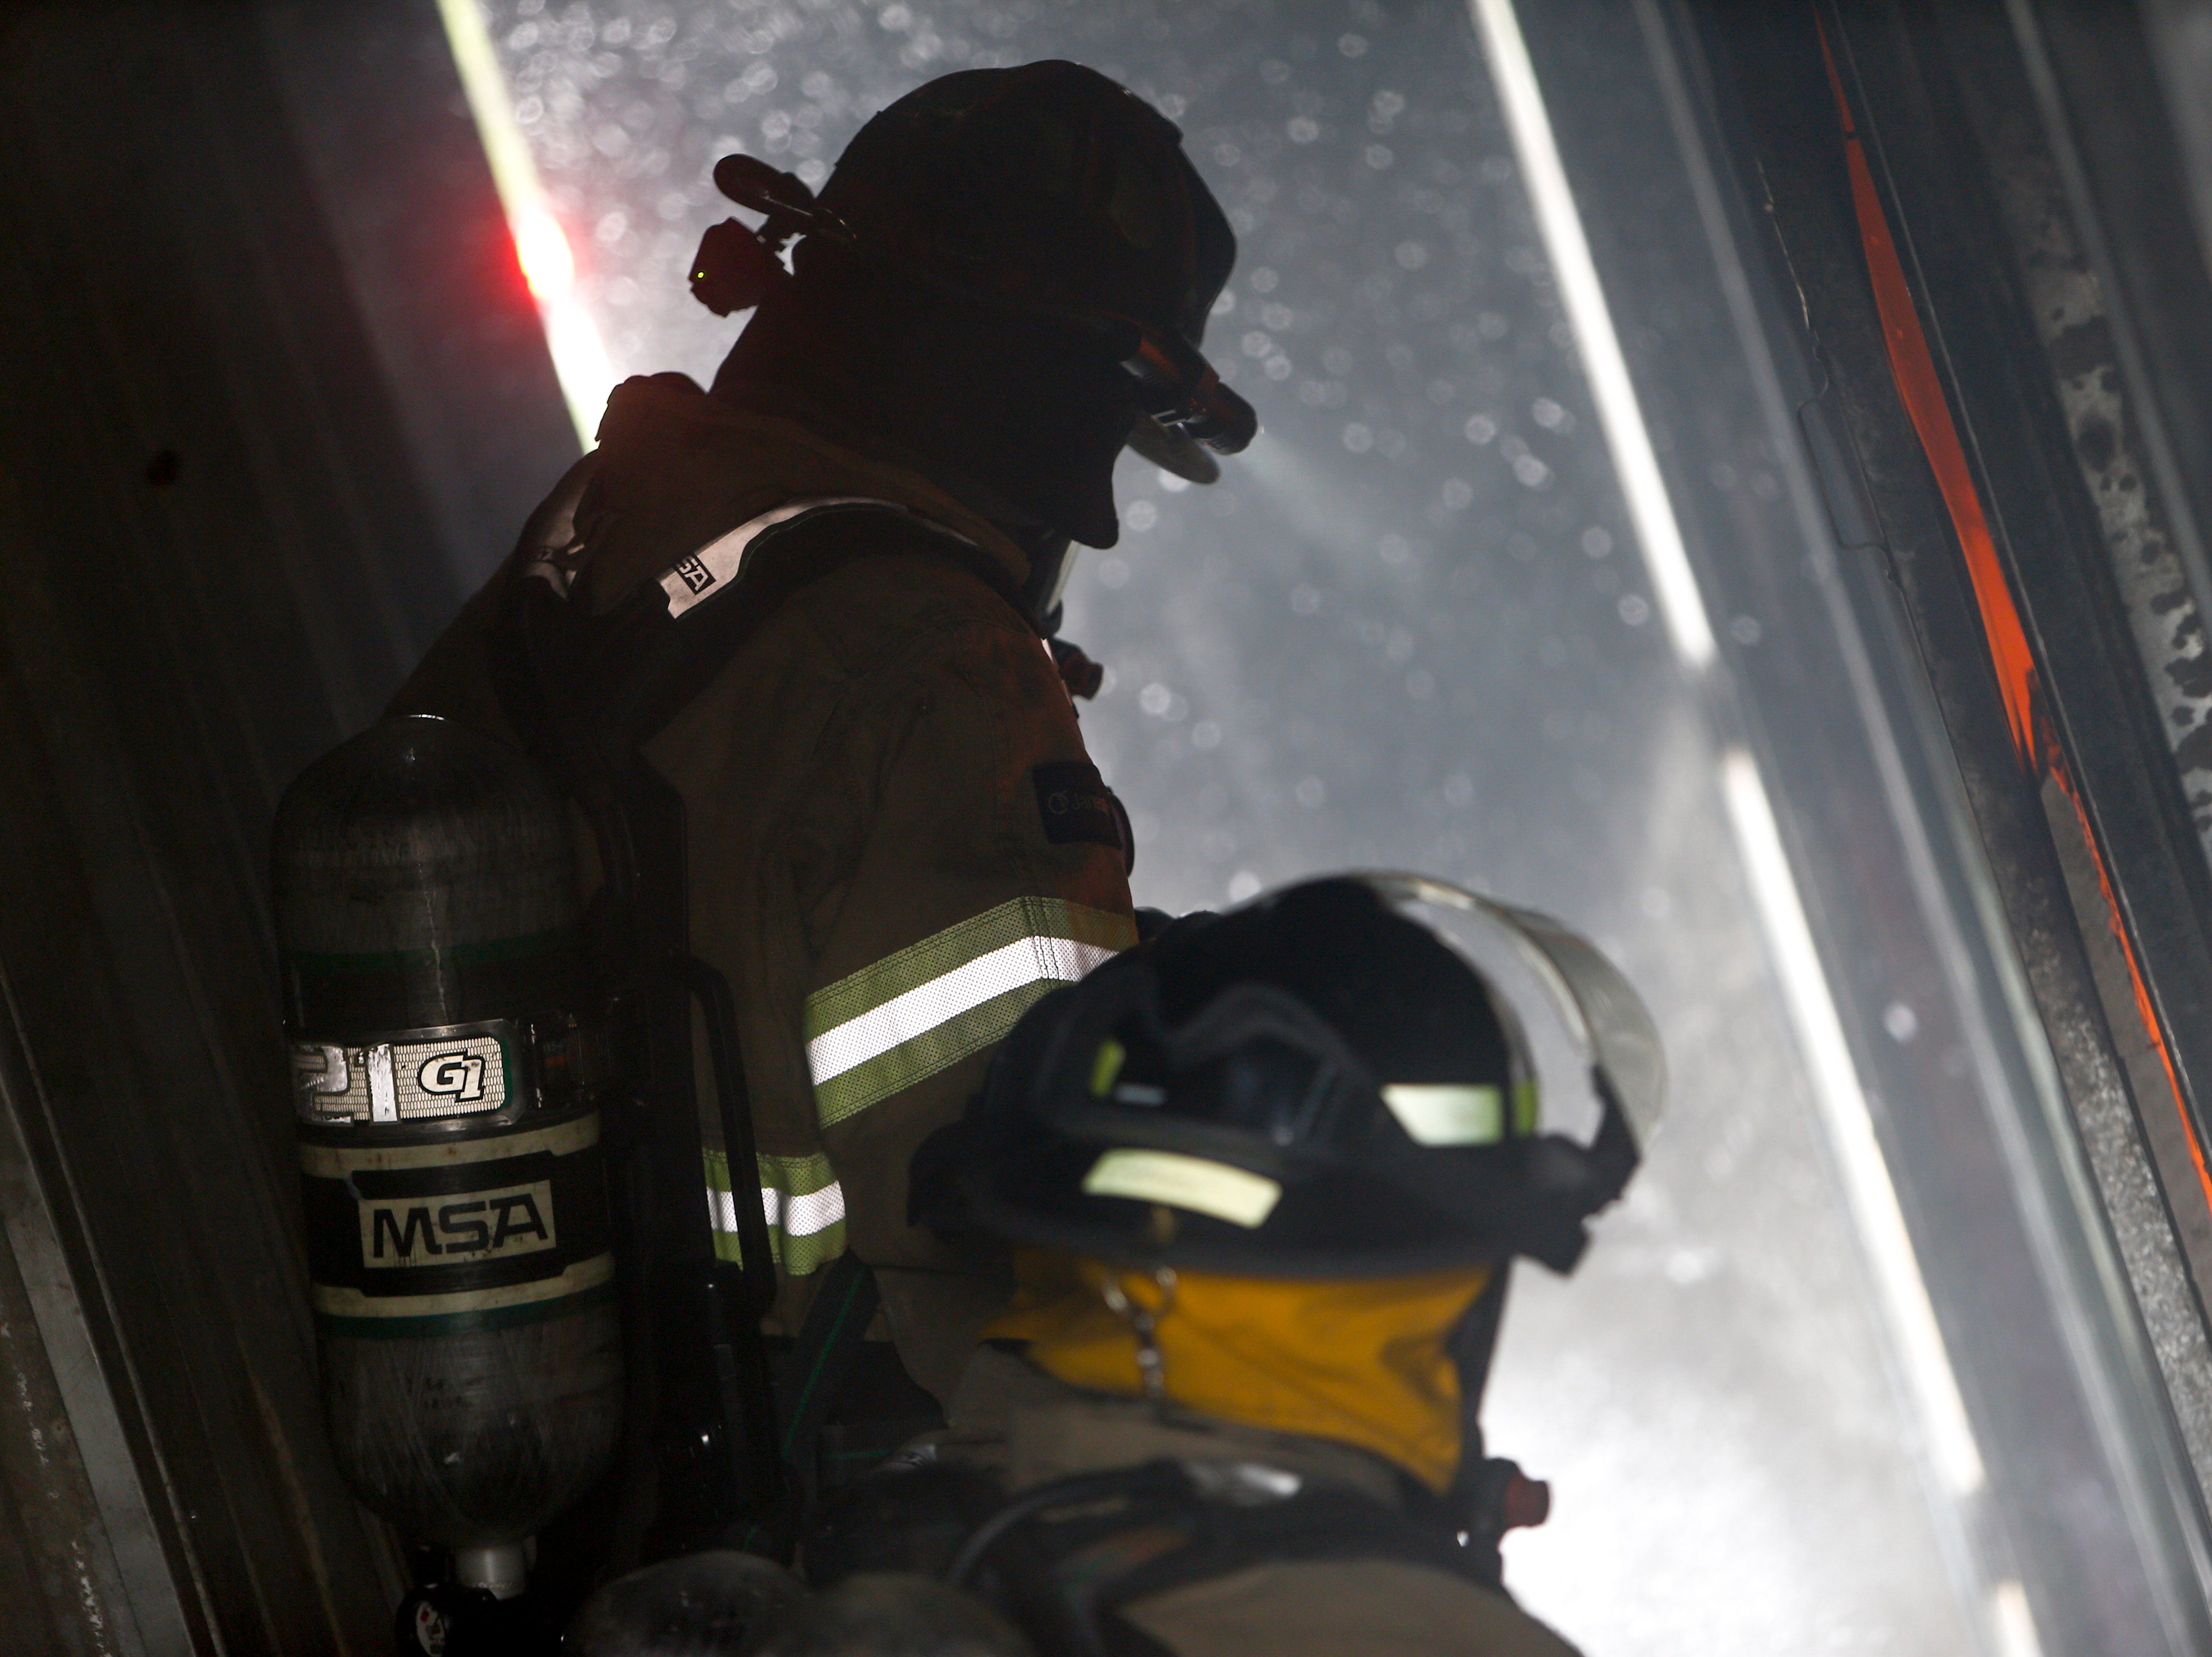 Recruits spray down the insides of a dedicated burn building during a live fire drill at Clarksville Fire Rescue in Clarksville, Tenn., on Friday, May 10, 2019.